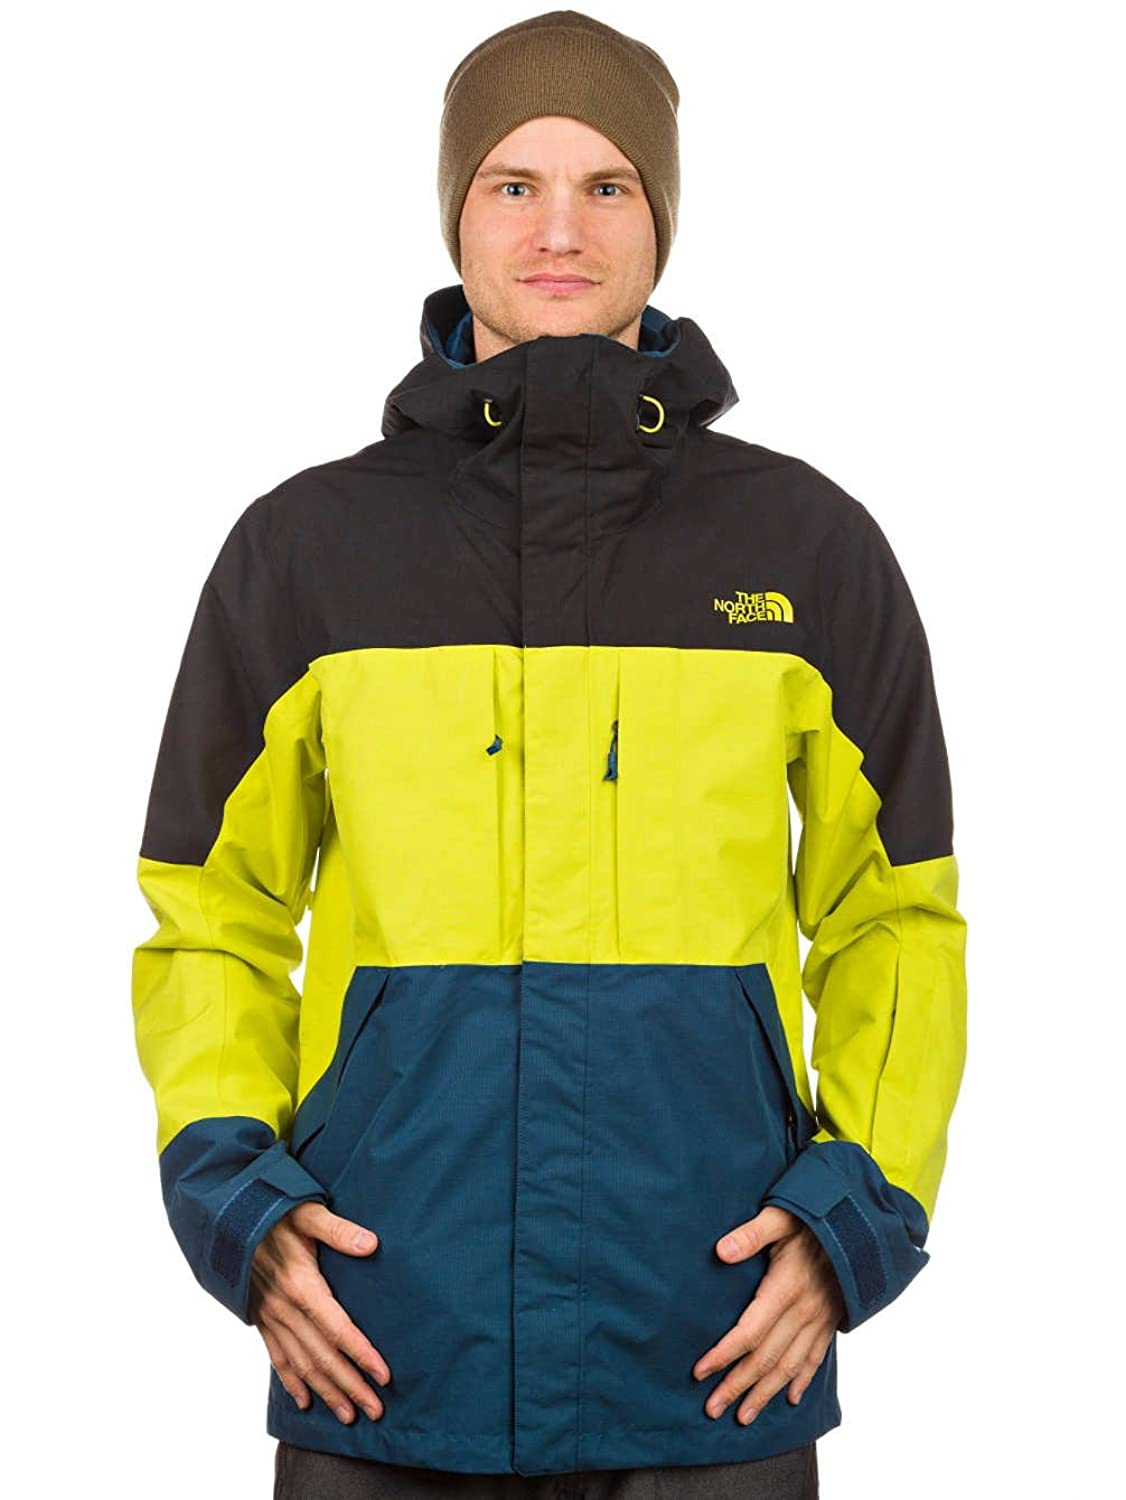 Herren Snowboard Jacke The North Face NFZ Jacket günstig